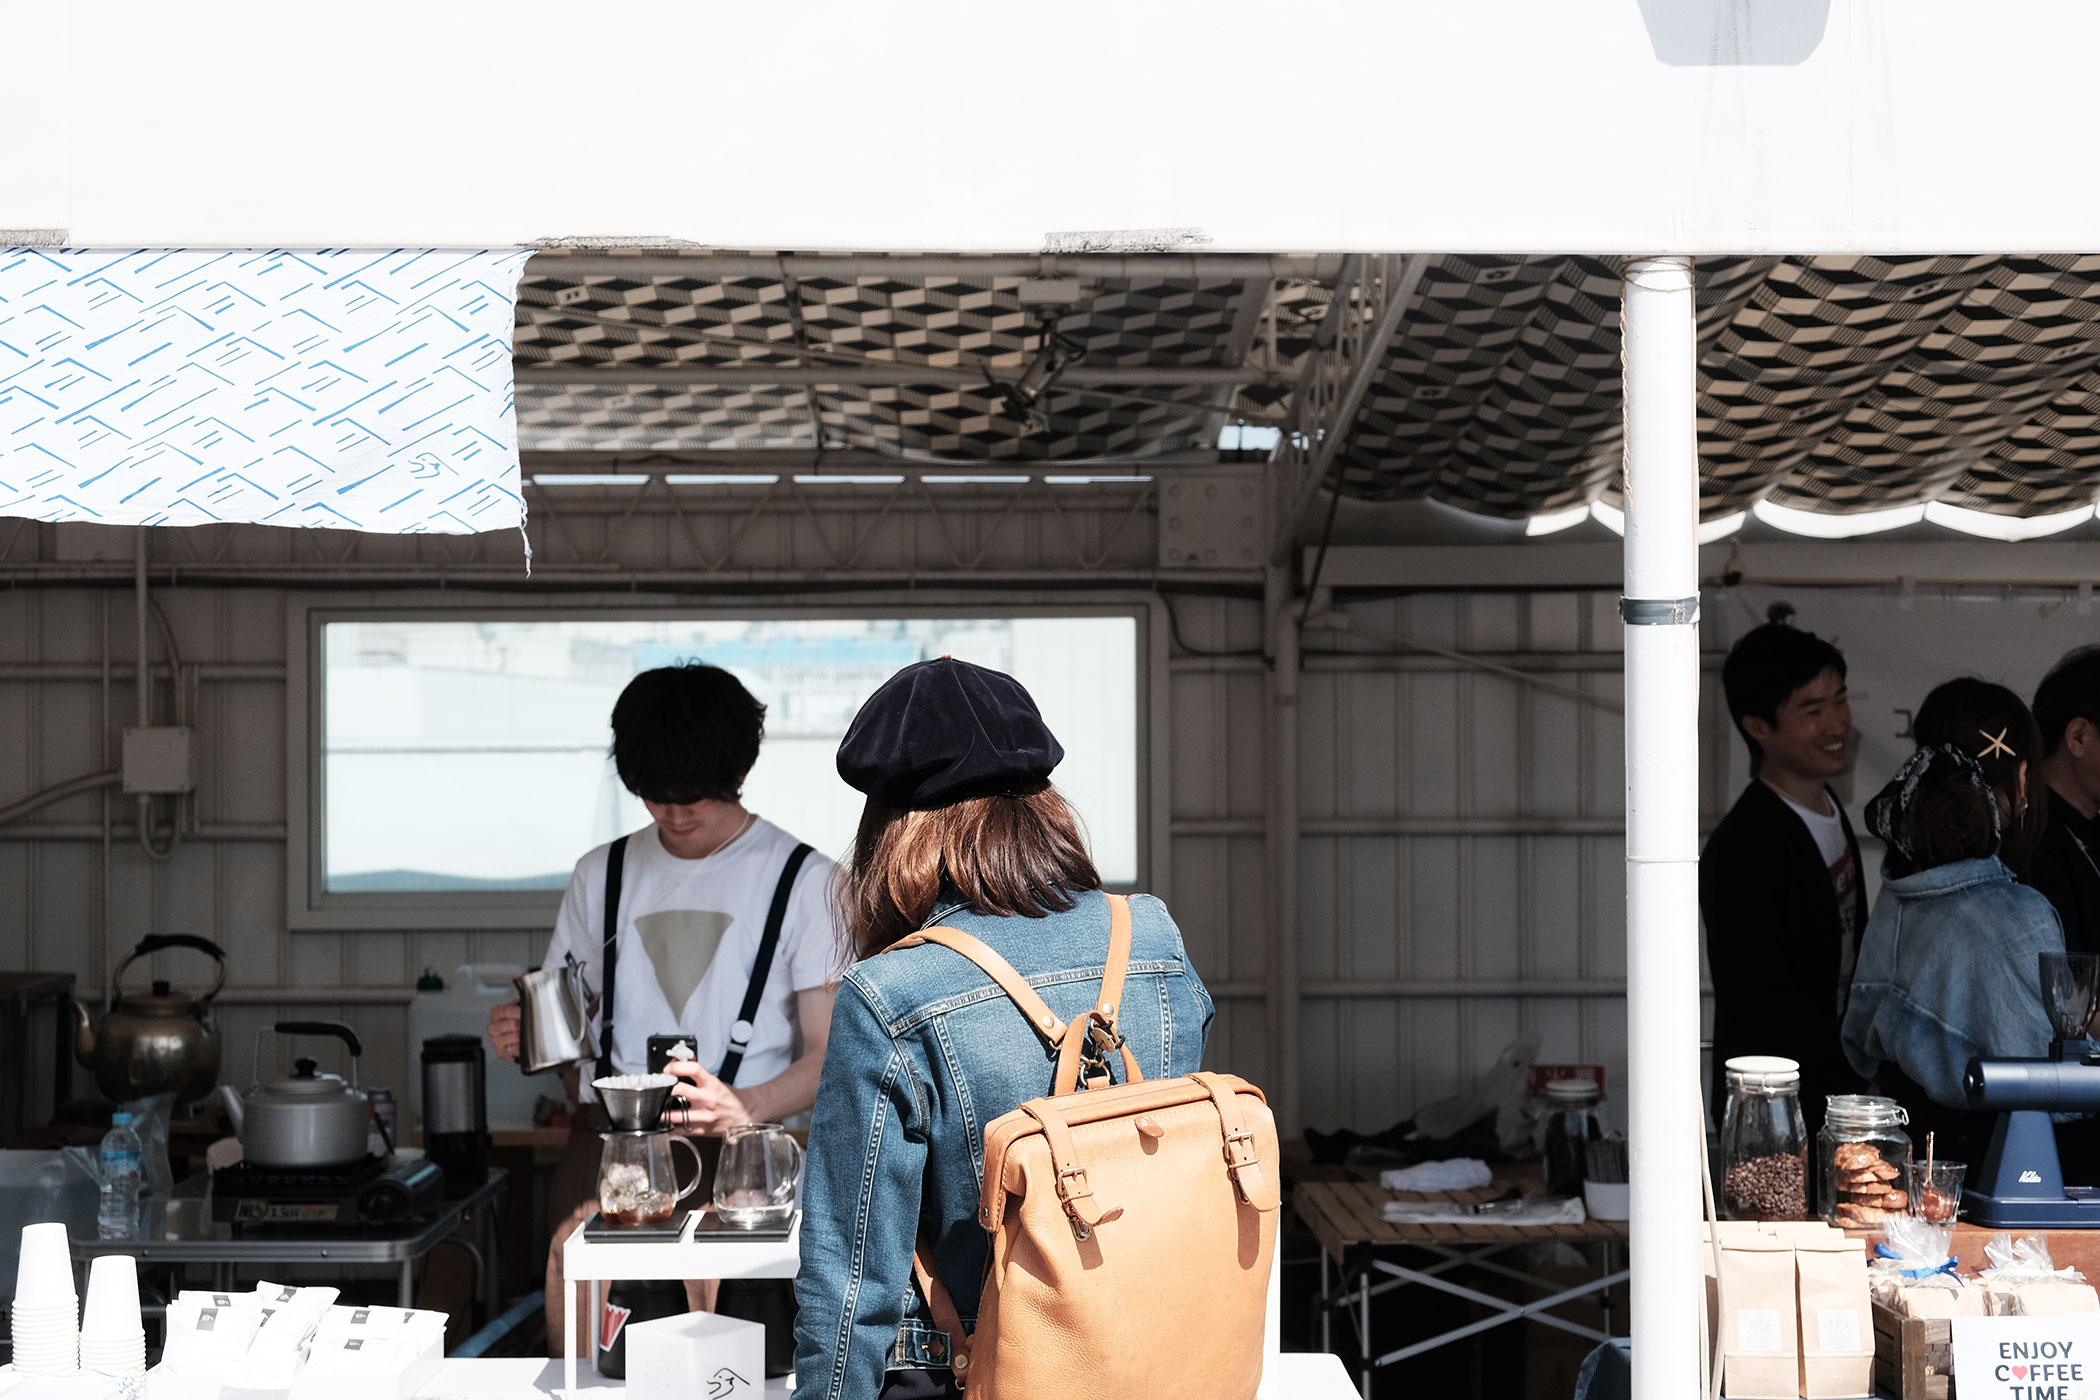 ENJOY COFFEE TIME vol.6 REPORT